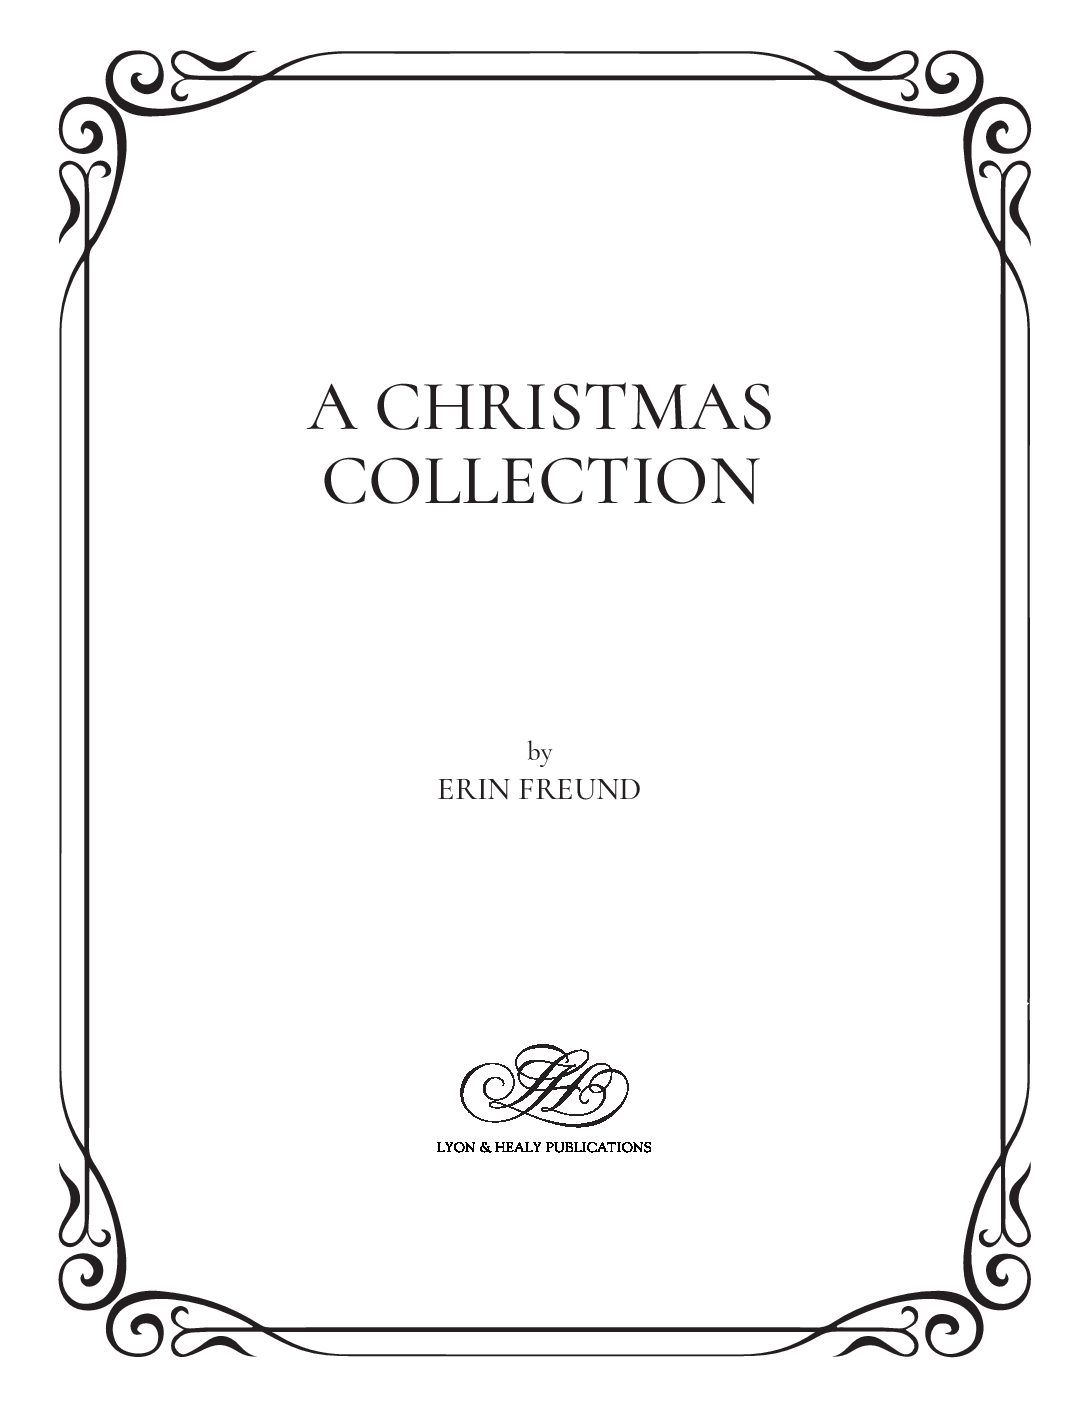 A Christmas Collection